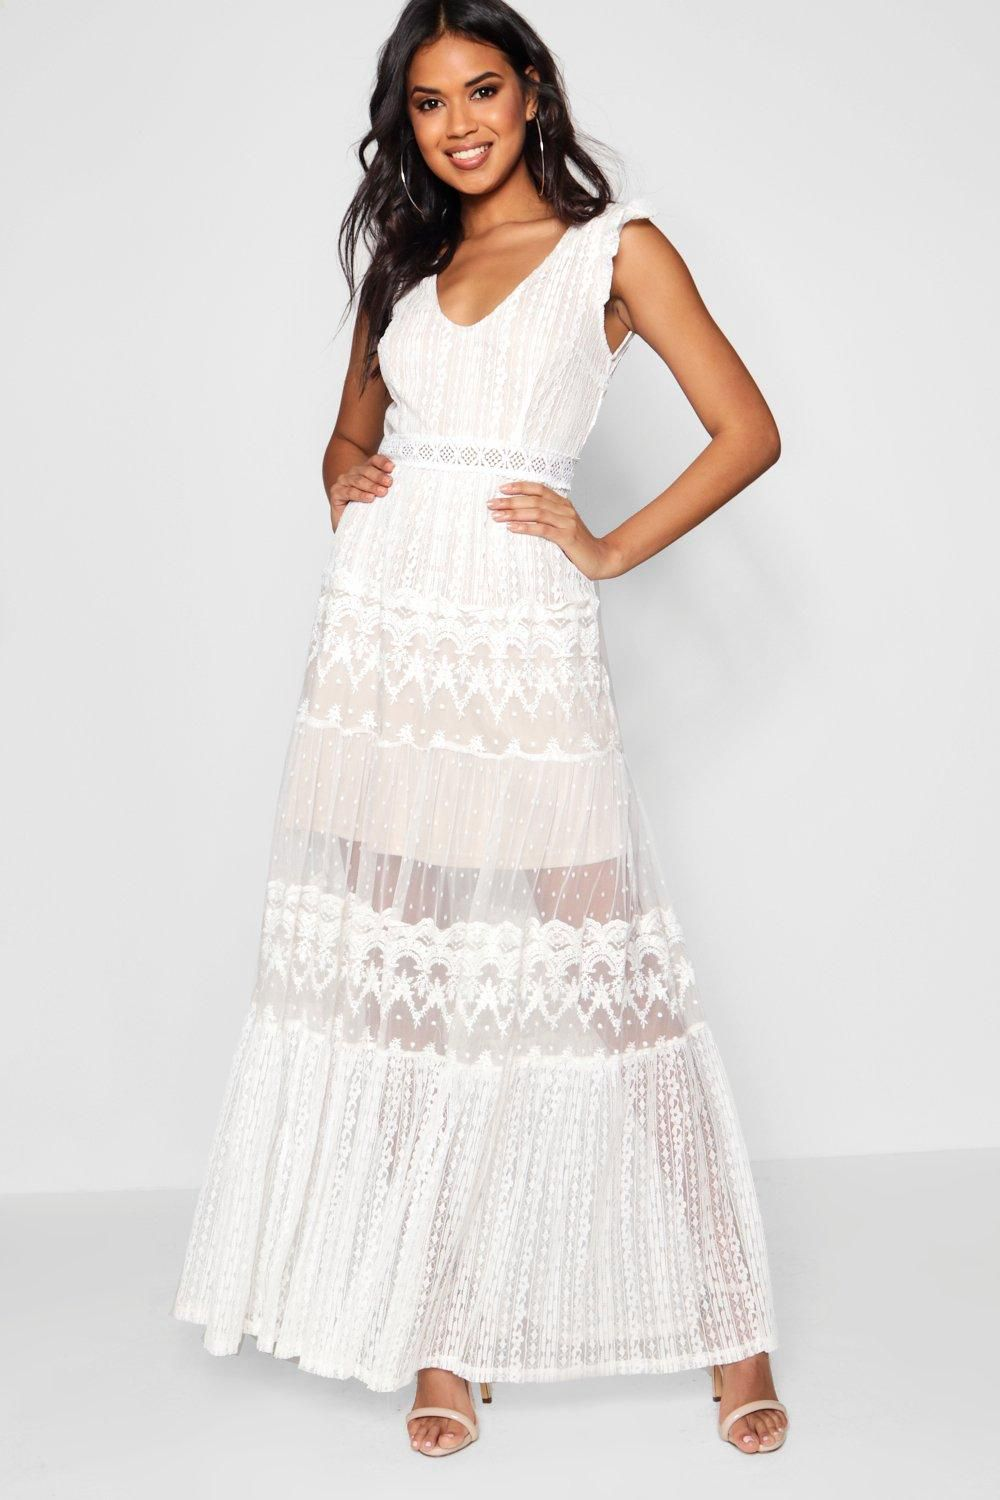 eee8a5cf328e8d Boutique Lace Panelled Detail Maxi Dress - Boohoo